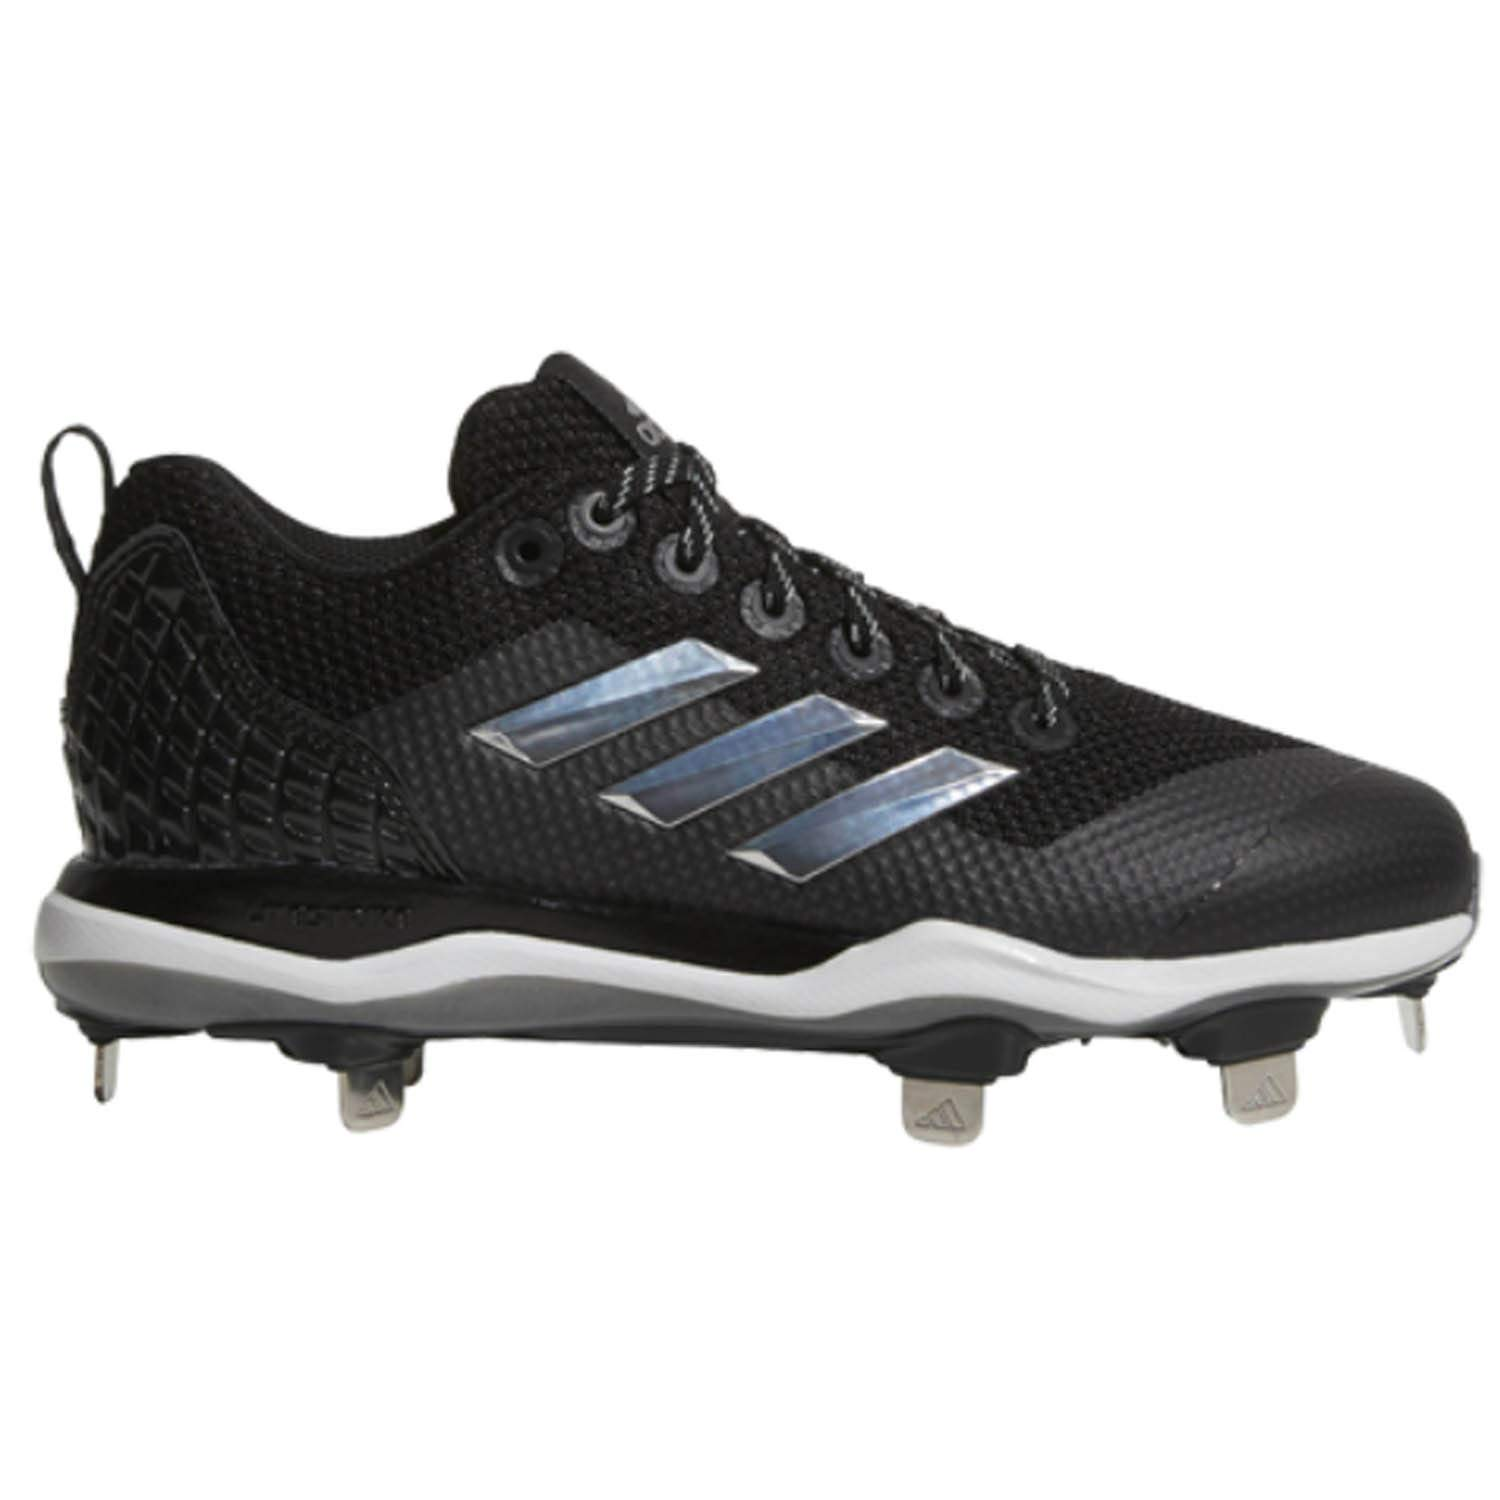 adidas Power Alley 5 TPU Black/SIL/White Baseball Shoes (AQ0248)